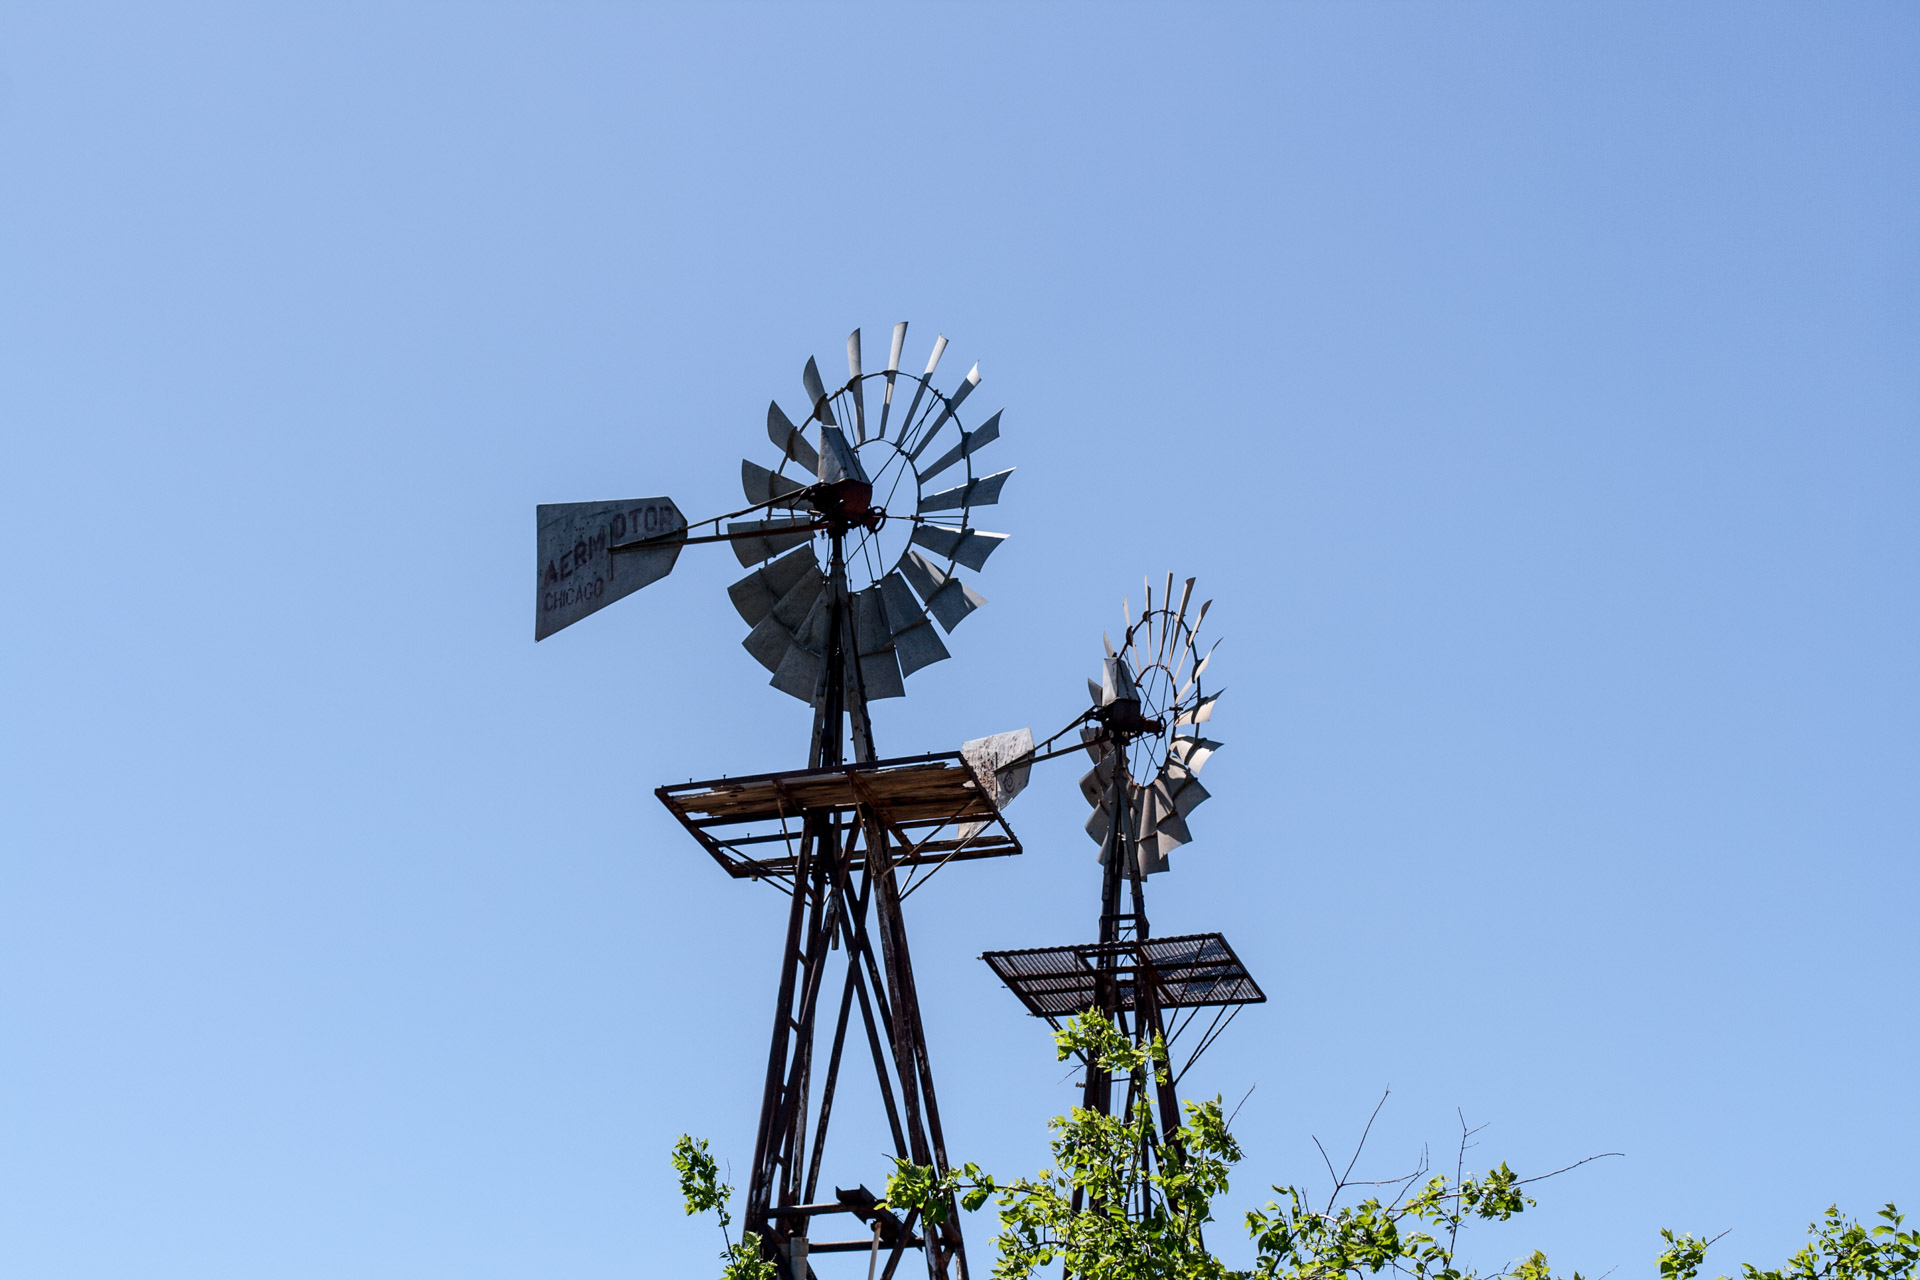 Windmill Duo (windmill close)